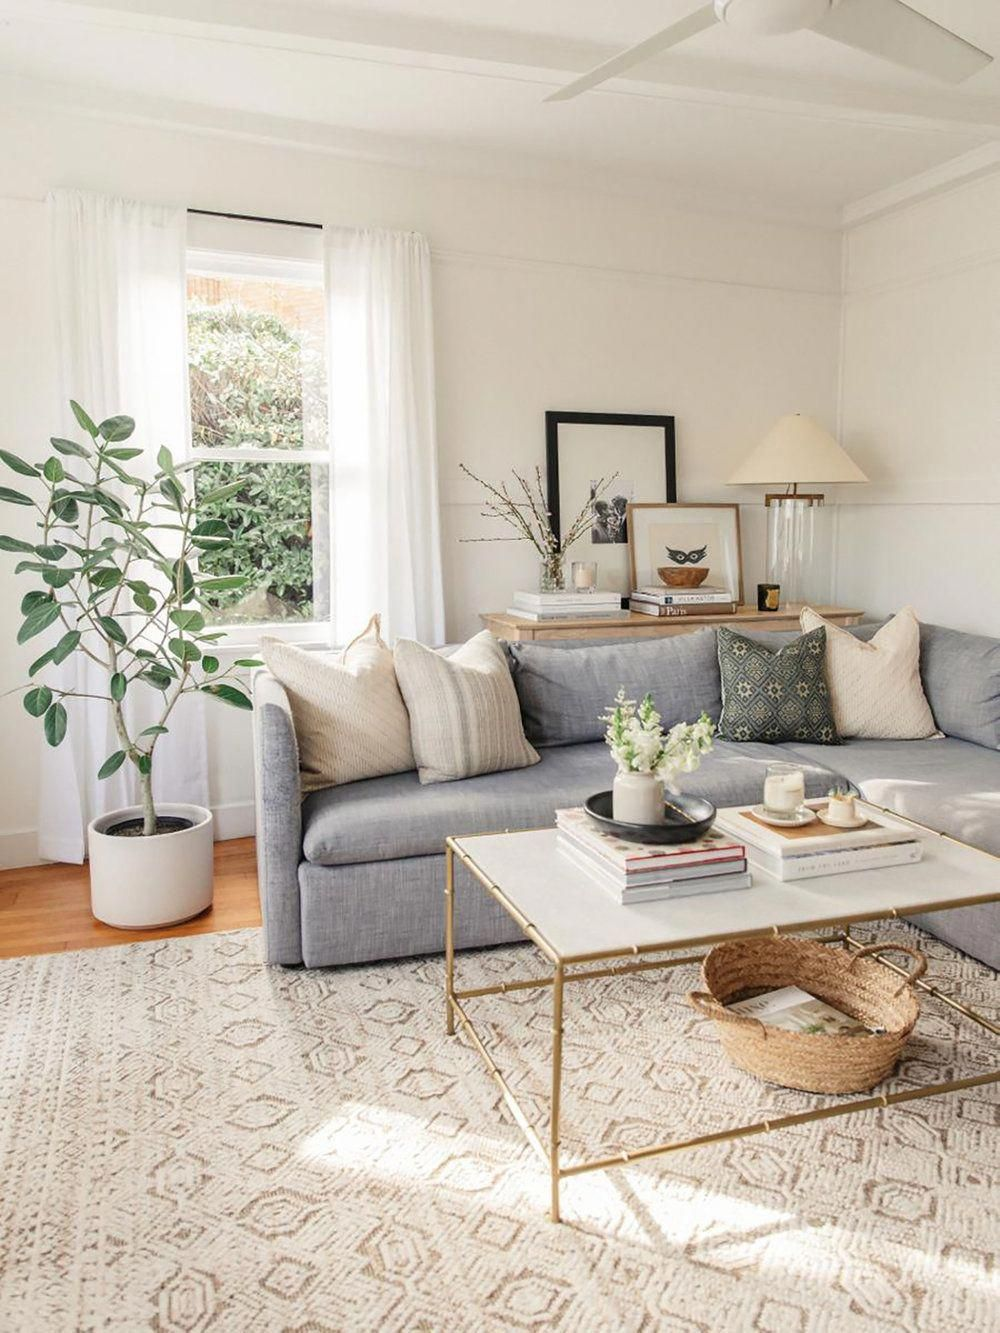 The Most Pinteresting Things This Month May Farmhouse Living Living Room Decor Comfortable Living Room Chairs Living Room Colors Pinterest living room decorations